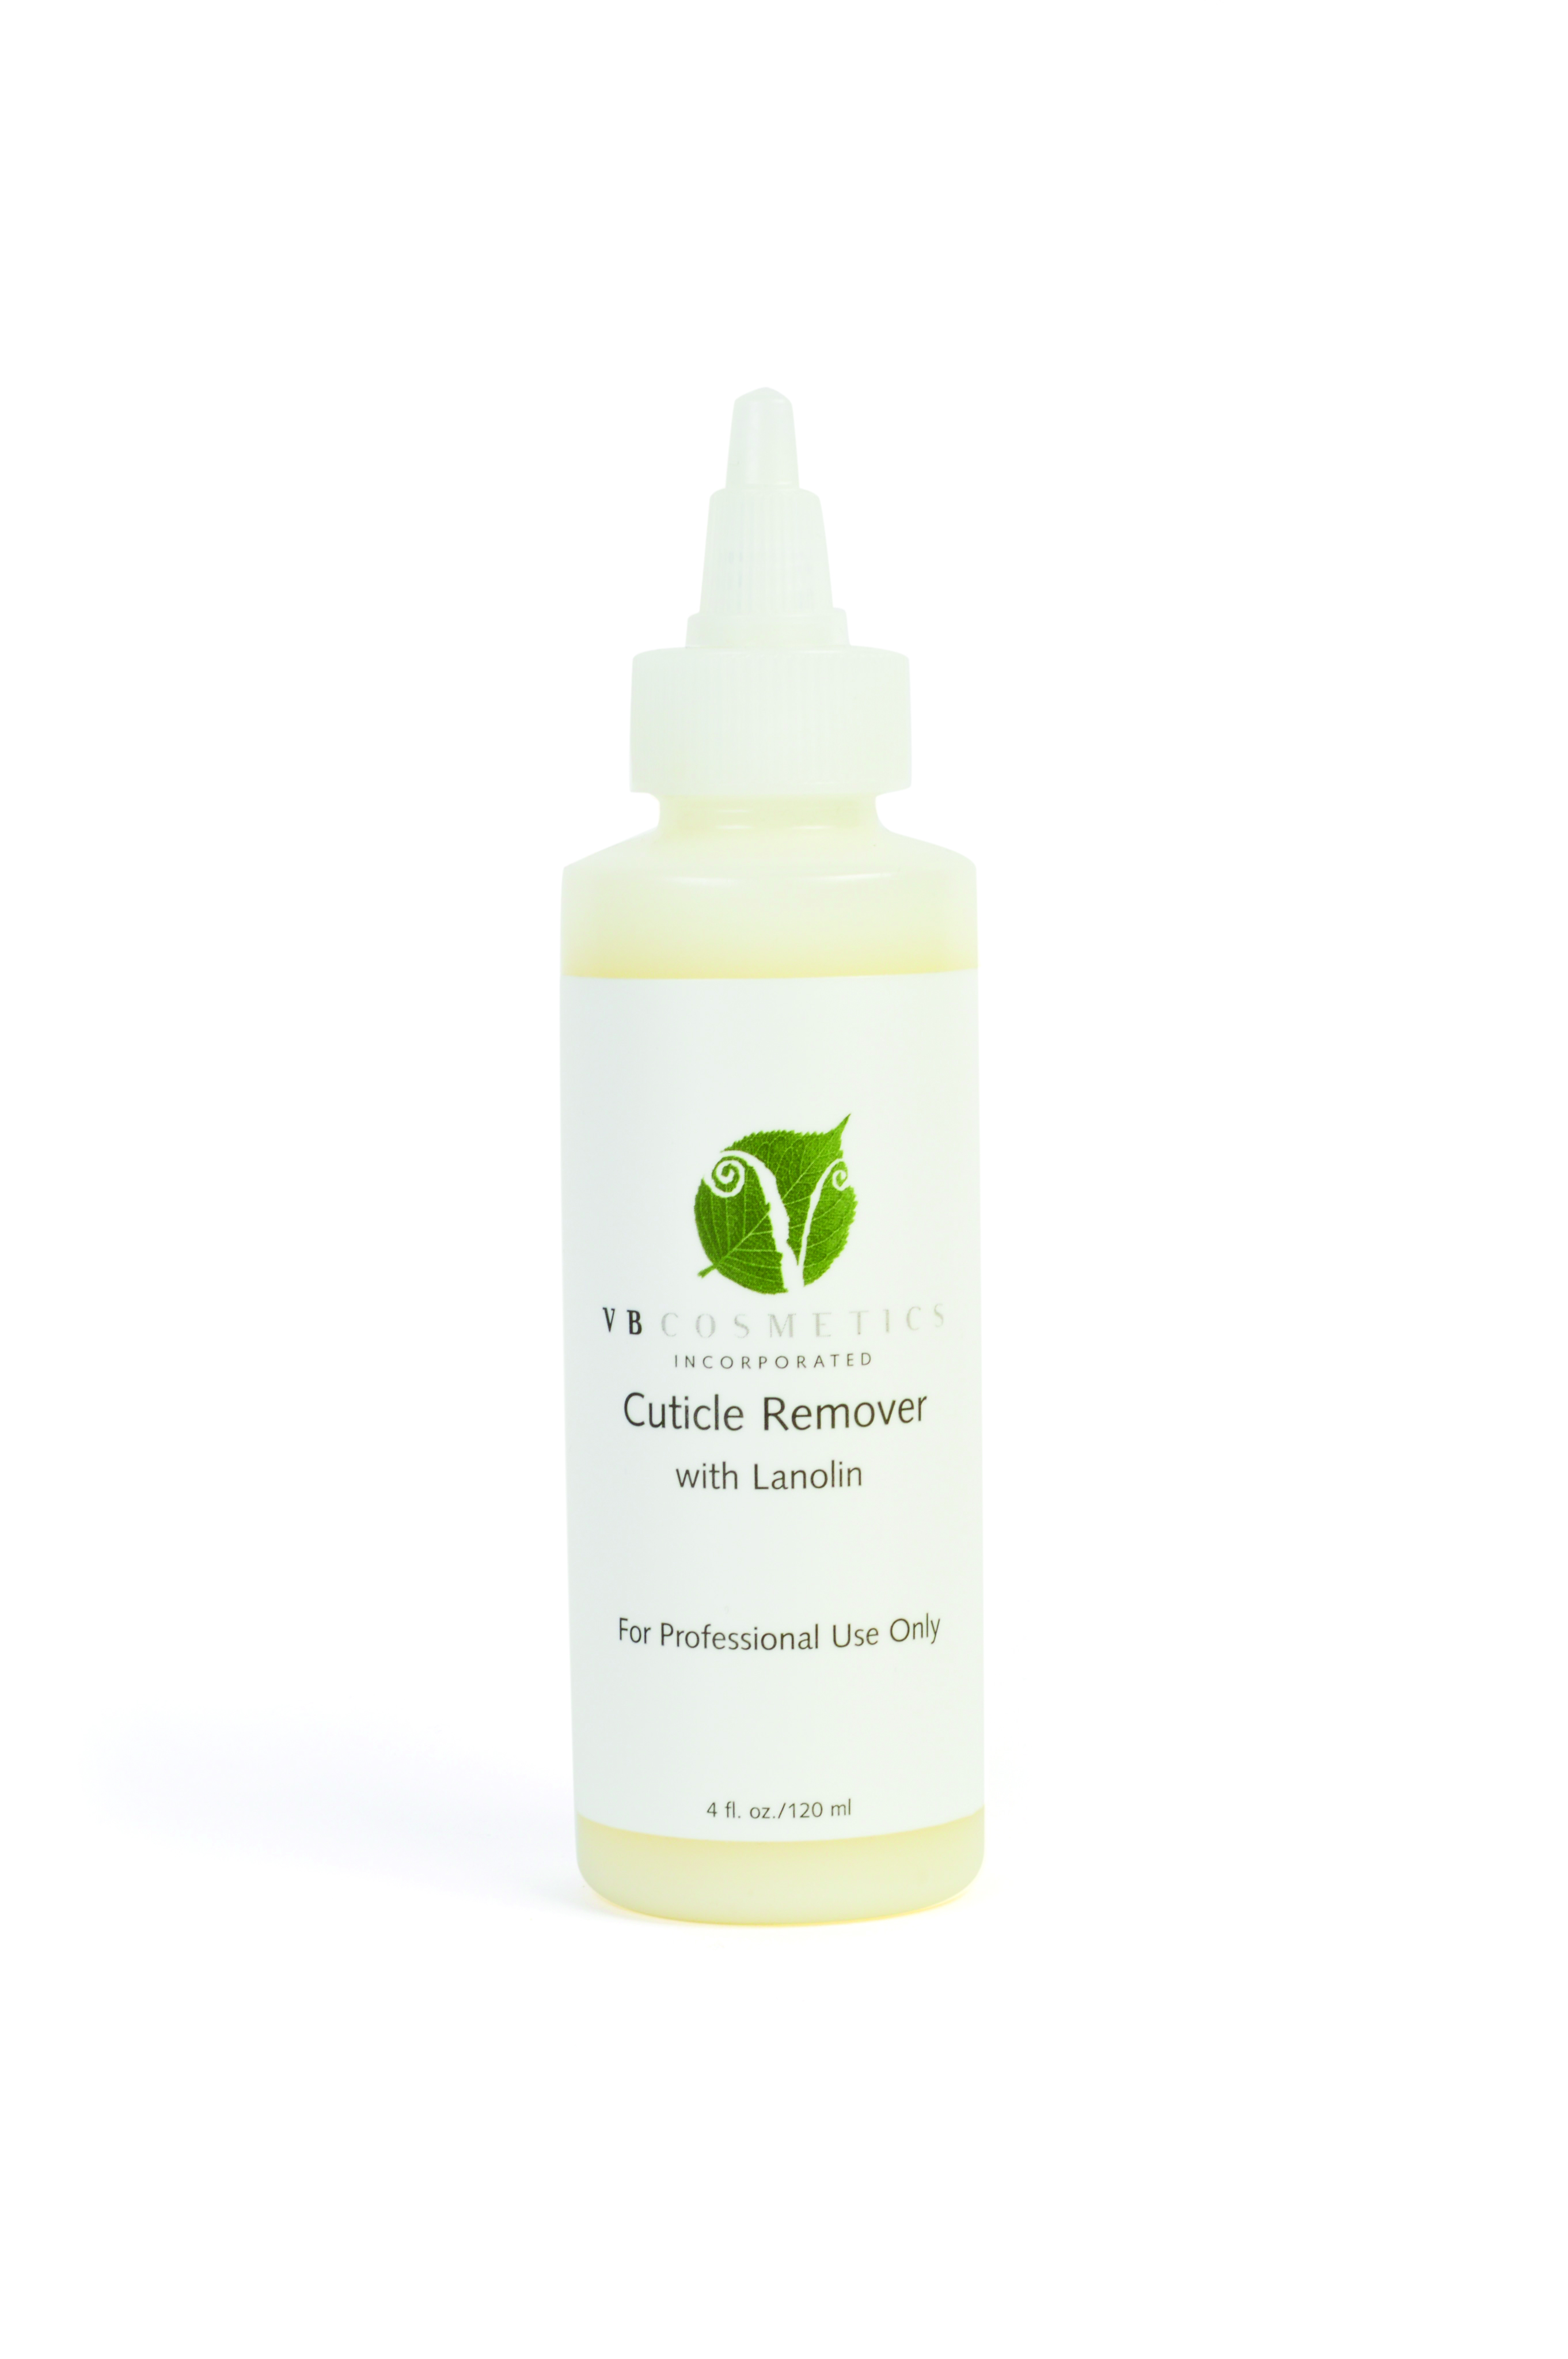 Cuticle Remover with Lanolin